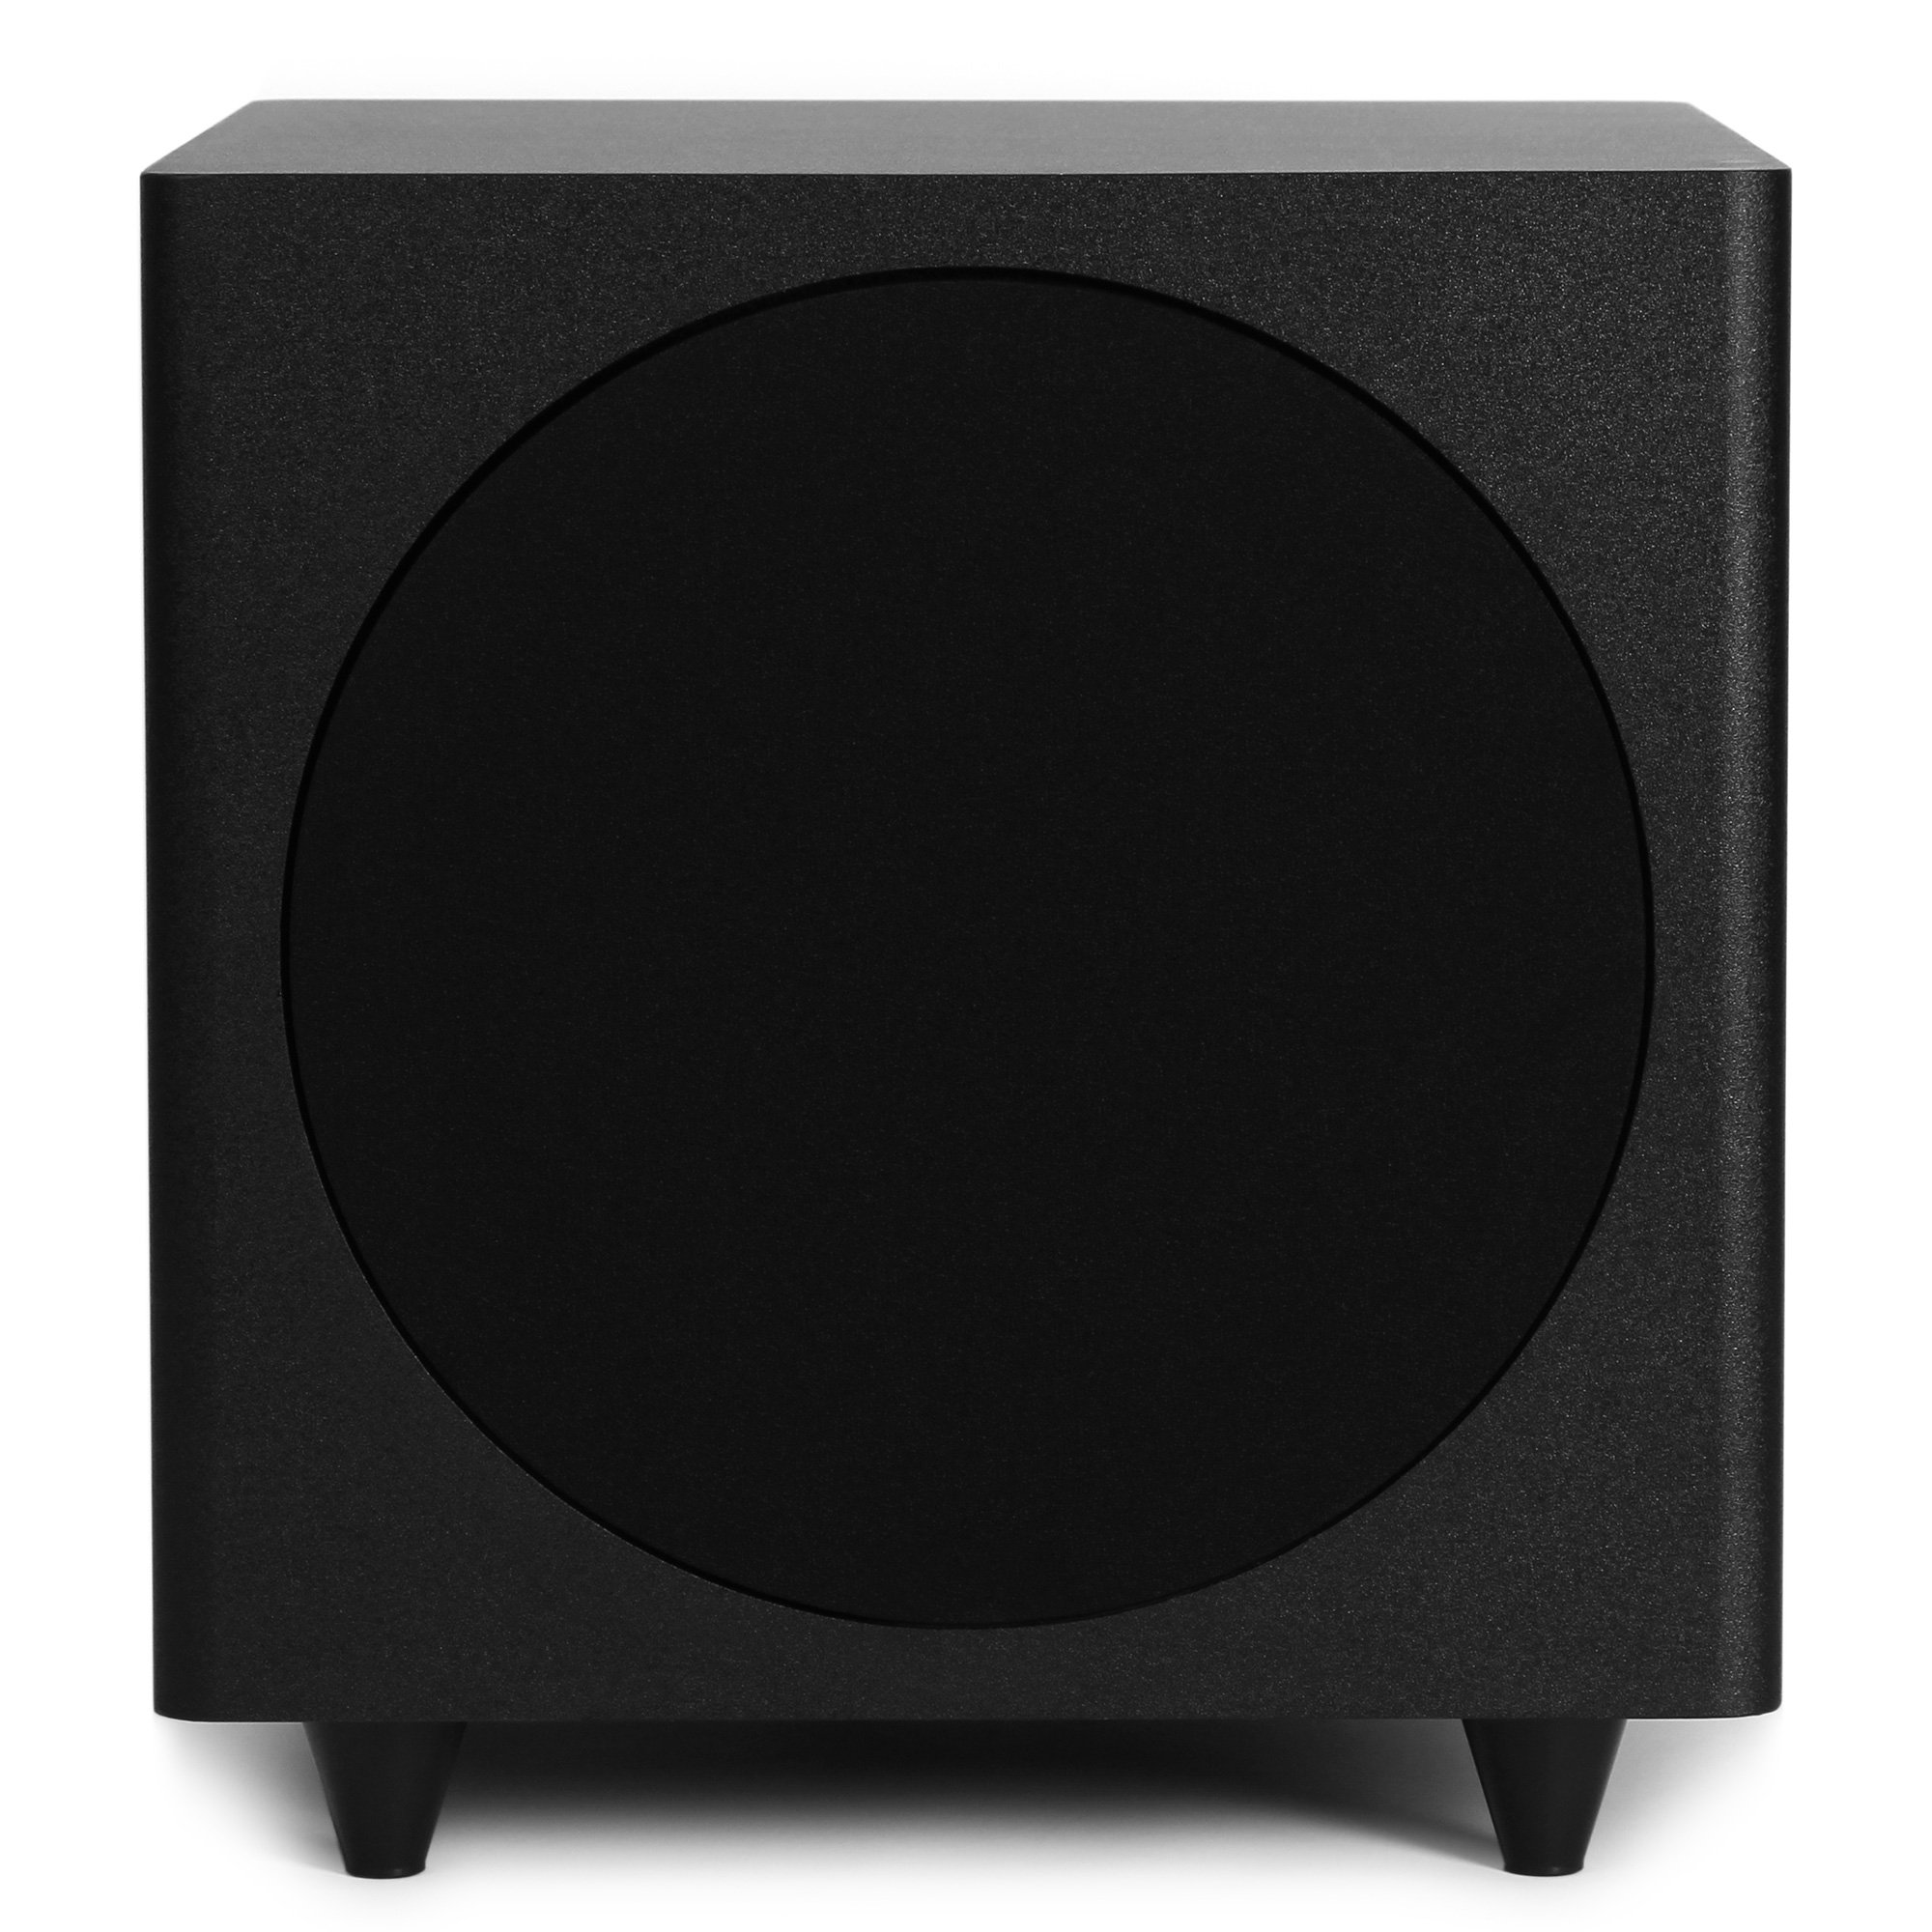 Micca 10-Inch Powered Subwoofer for Home Theater or Music (MS10)